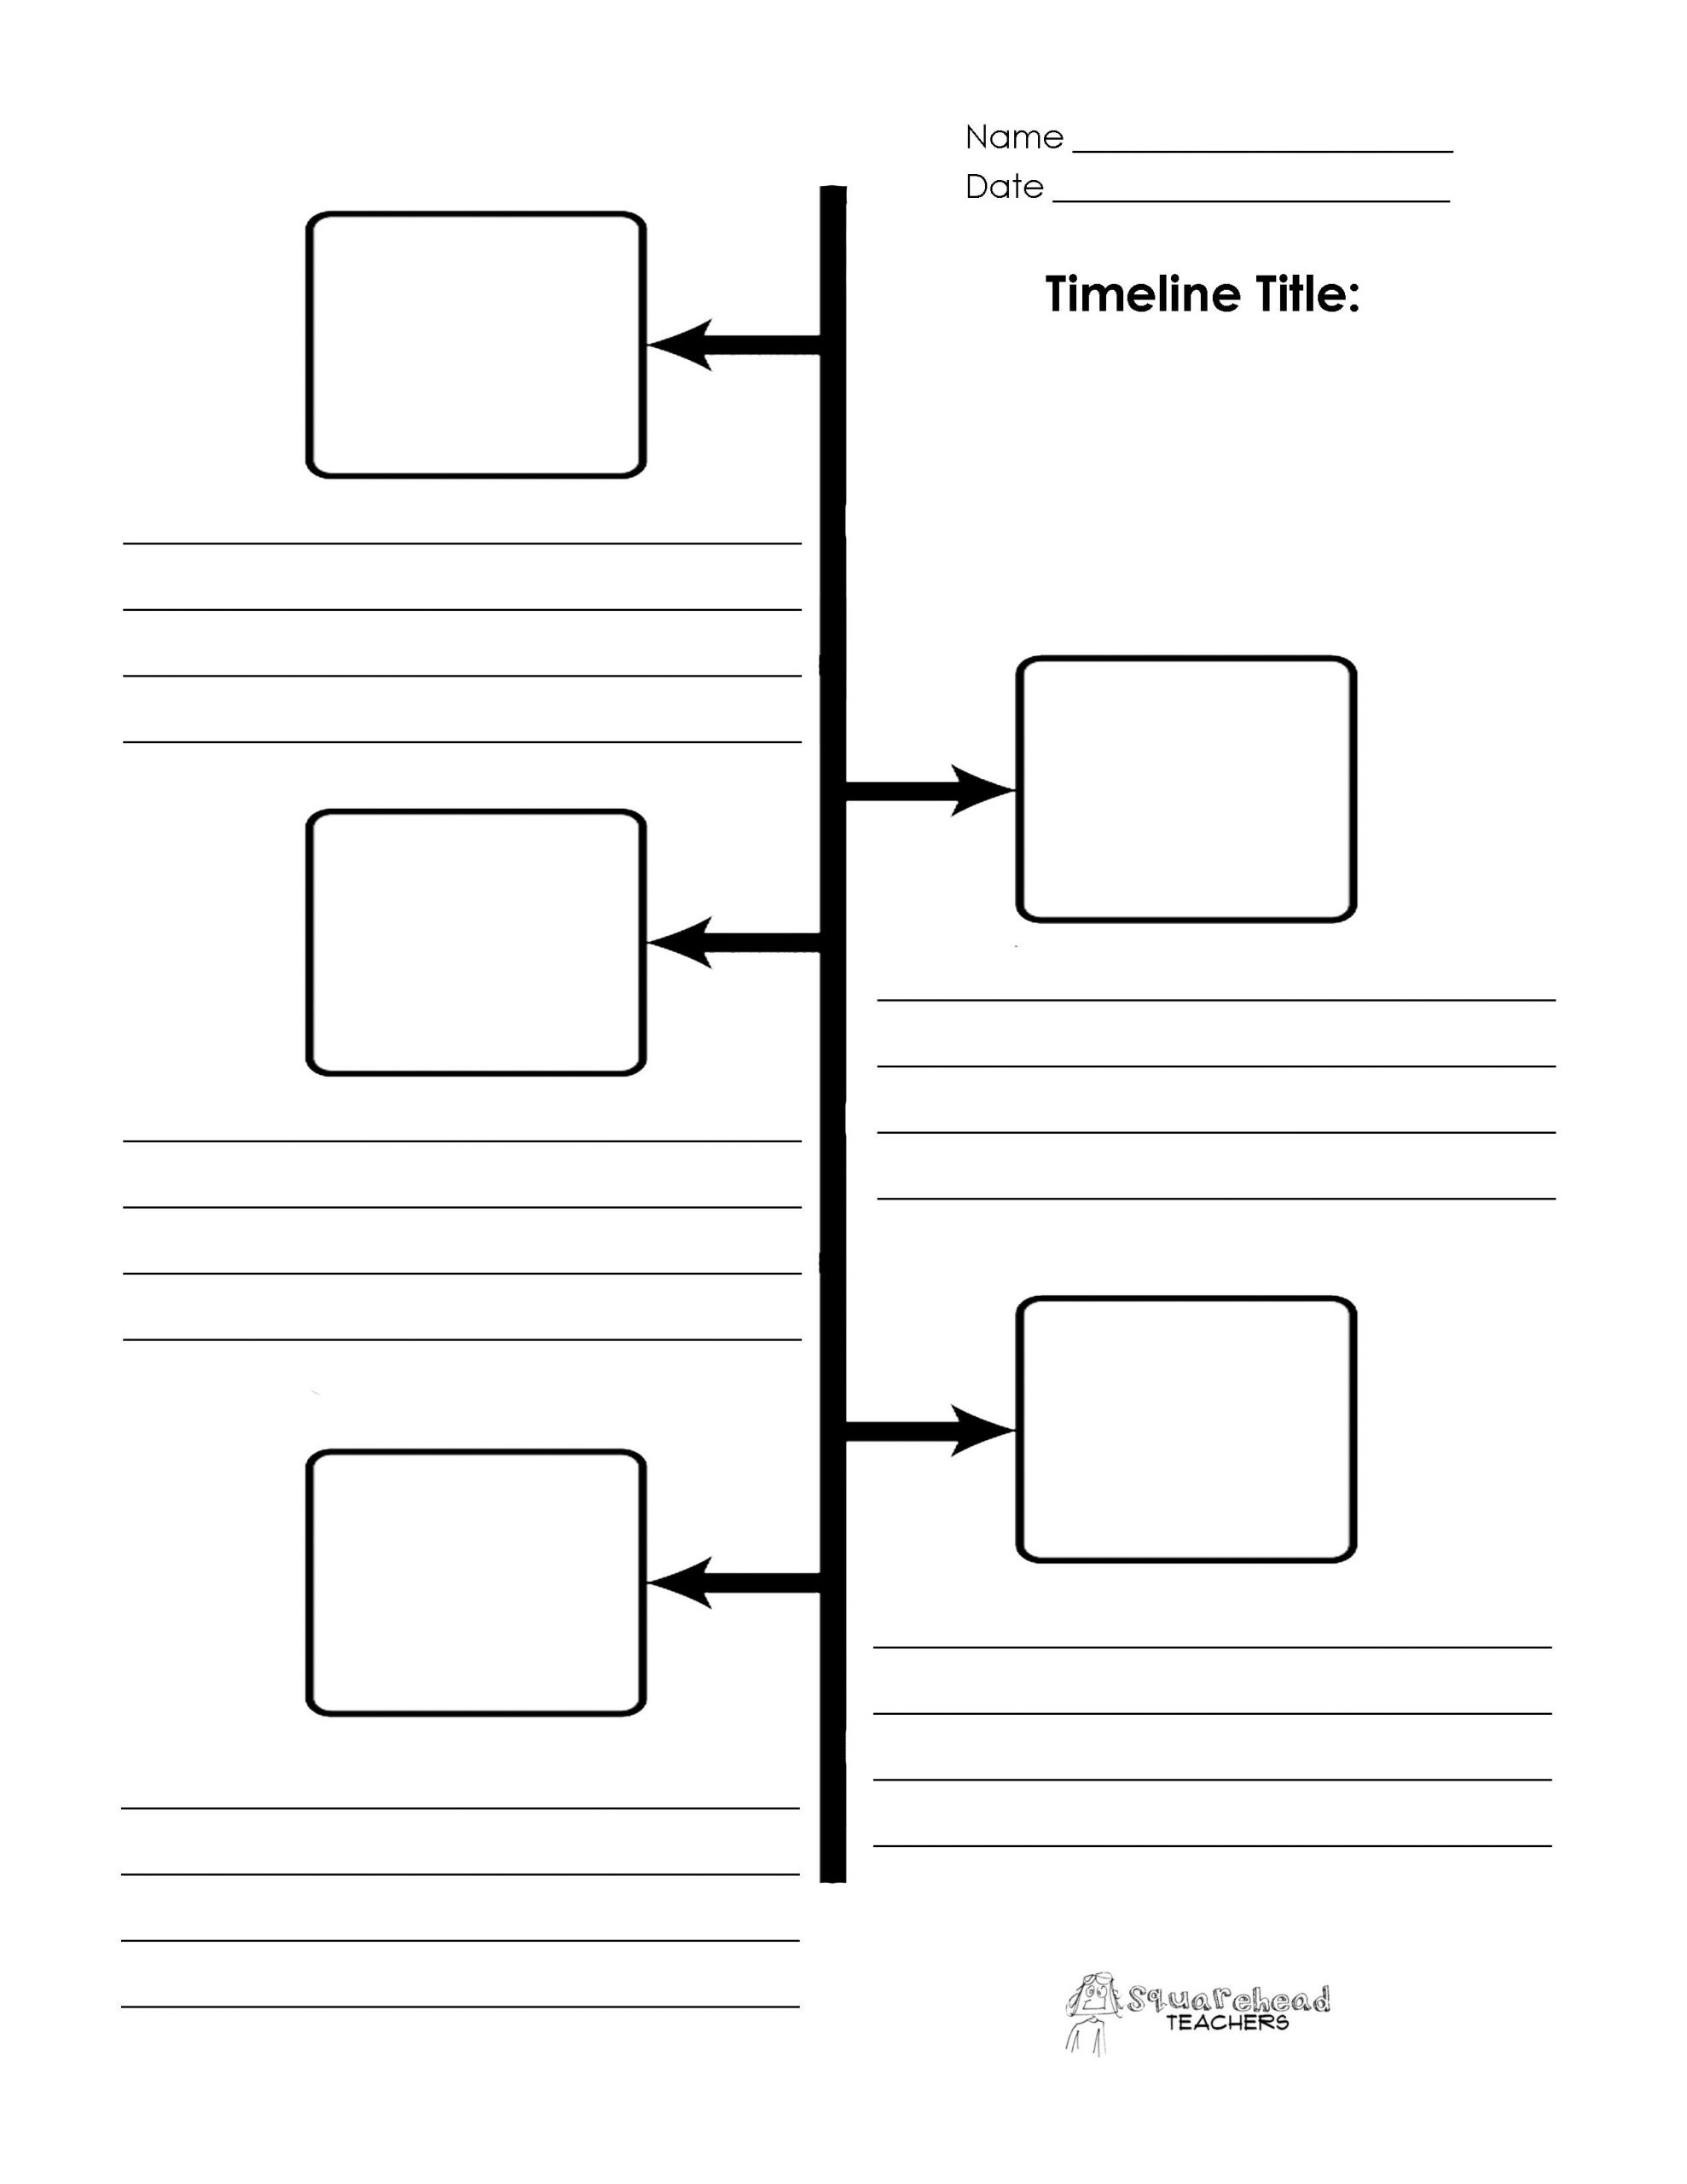 Timeline Worksheets for 1st Grade Blank Timeline Printables